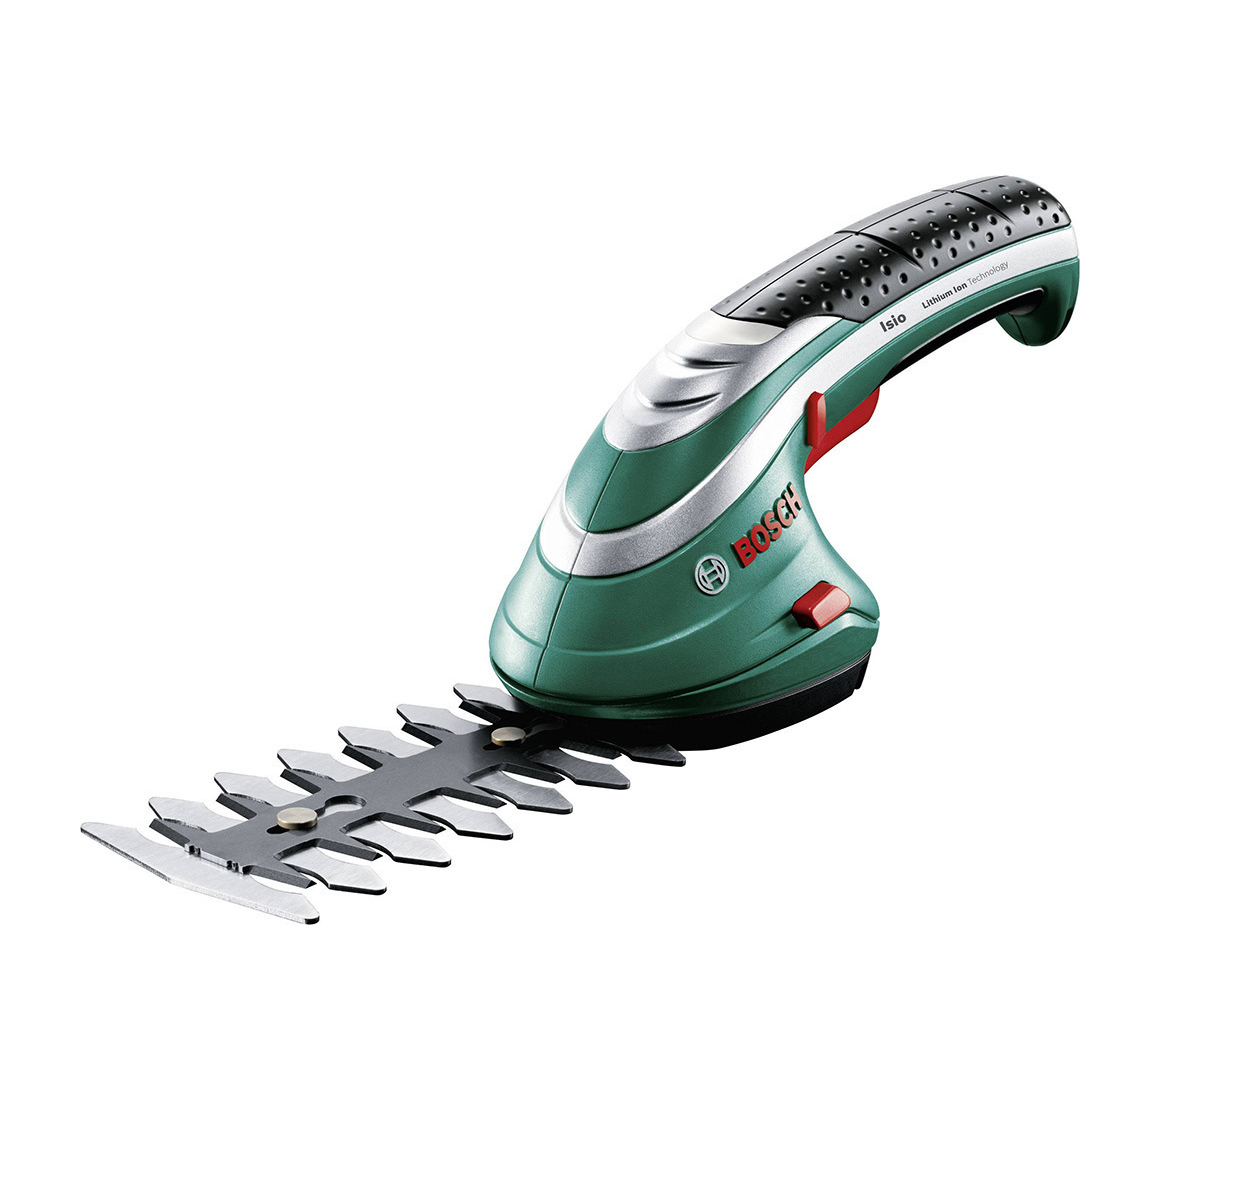 Bosch Isio 3 Cordless Shrub & Grass Shears 0600833101